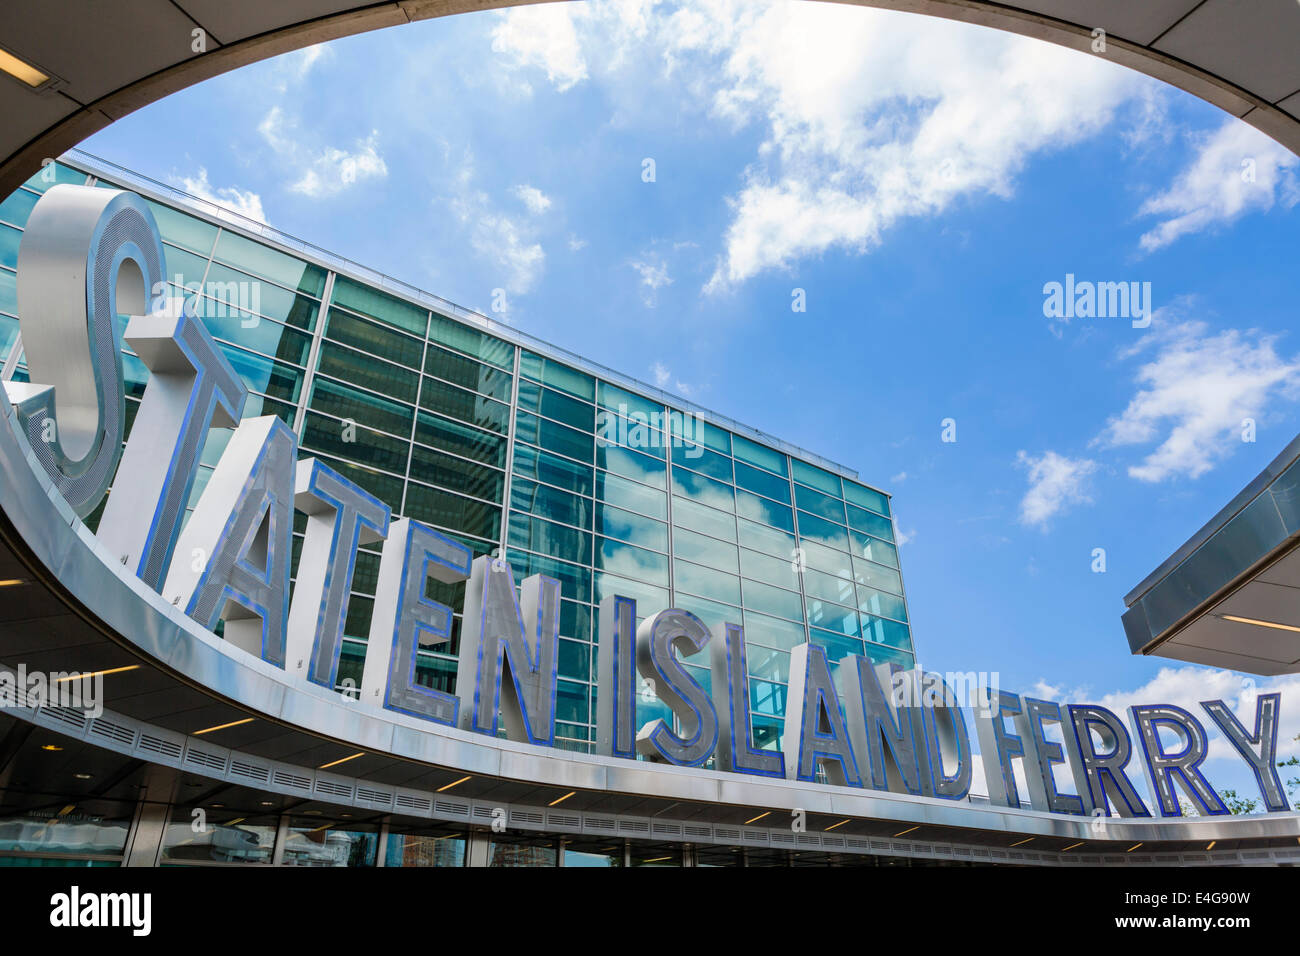 Entrance to the terminal on the Lower Manhattan side of the Staten Island Ferry, New York City, NY, USA - Stock Image